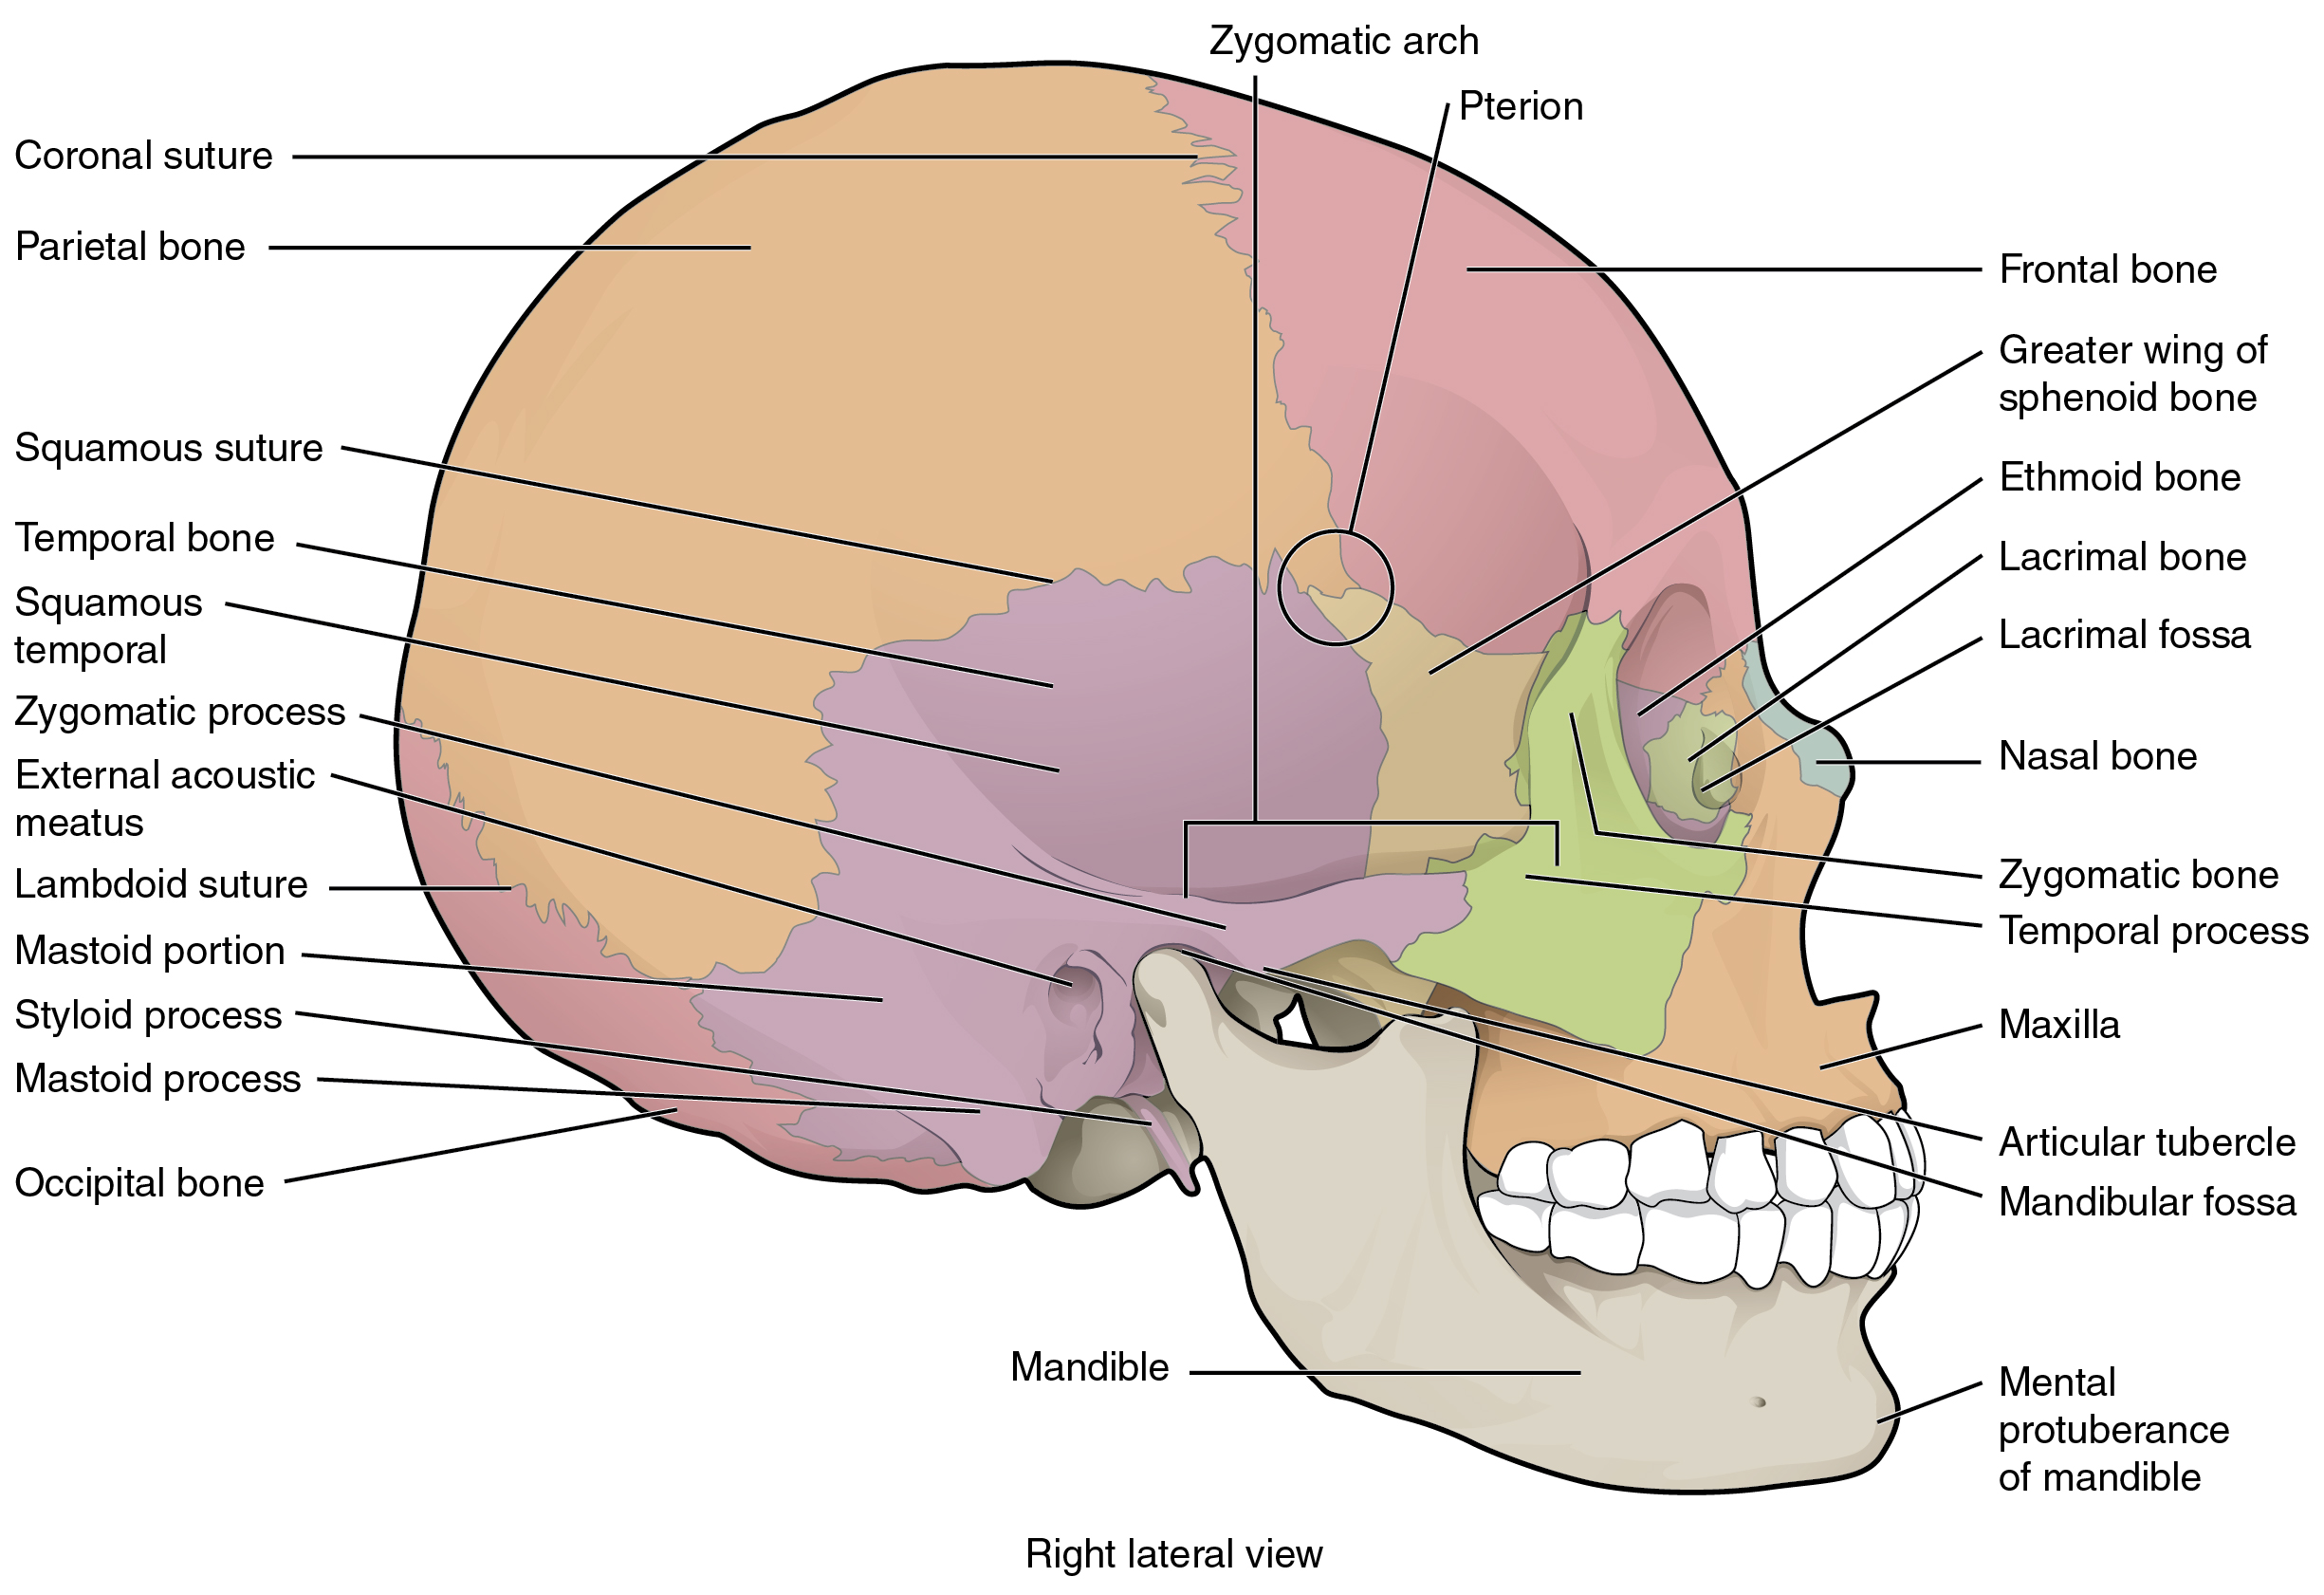 case  zygomatic arch  and the upper and lower jaws  The zygomatic    Zygomatic Region